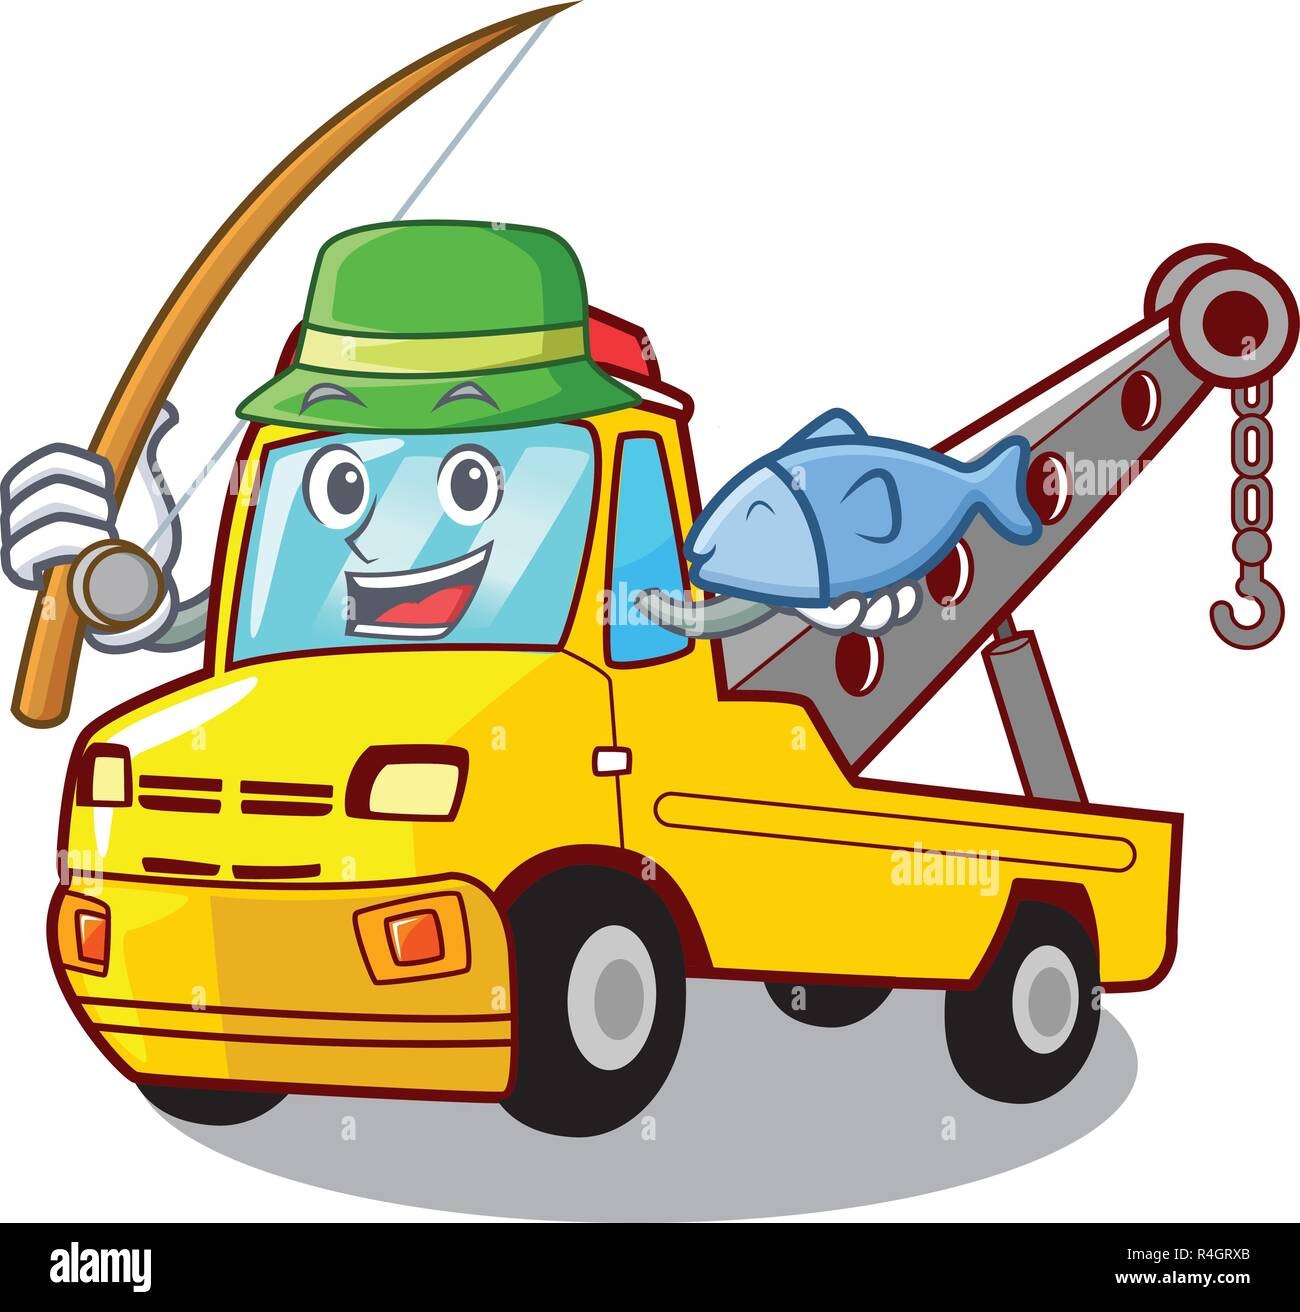 Fishing transportation on truck towing cartoon car - Stock Image